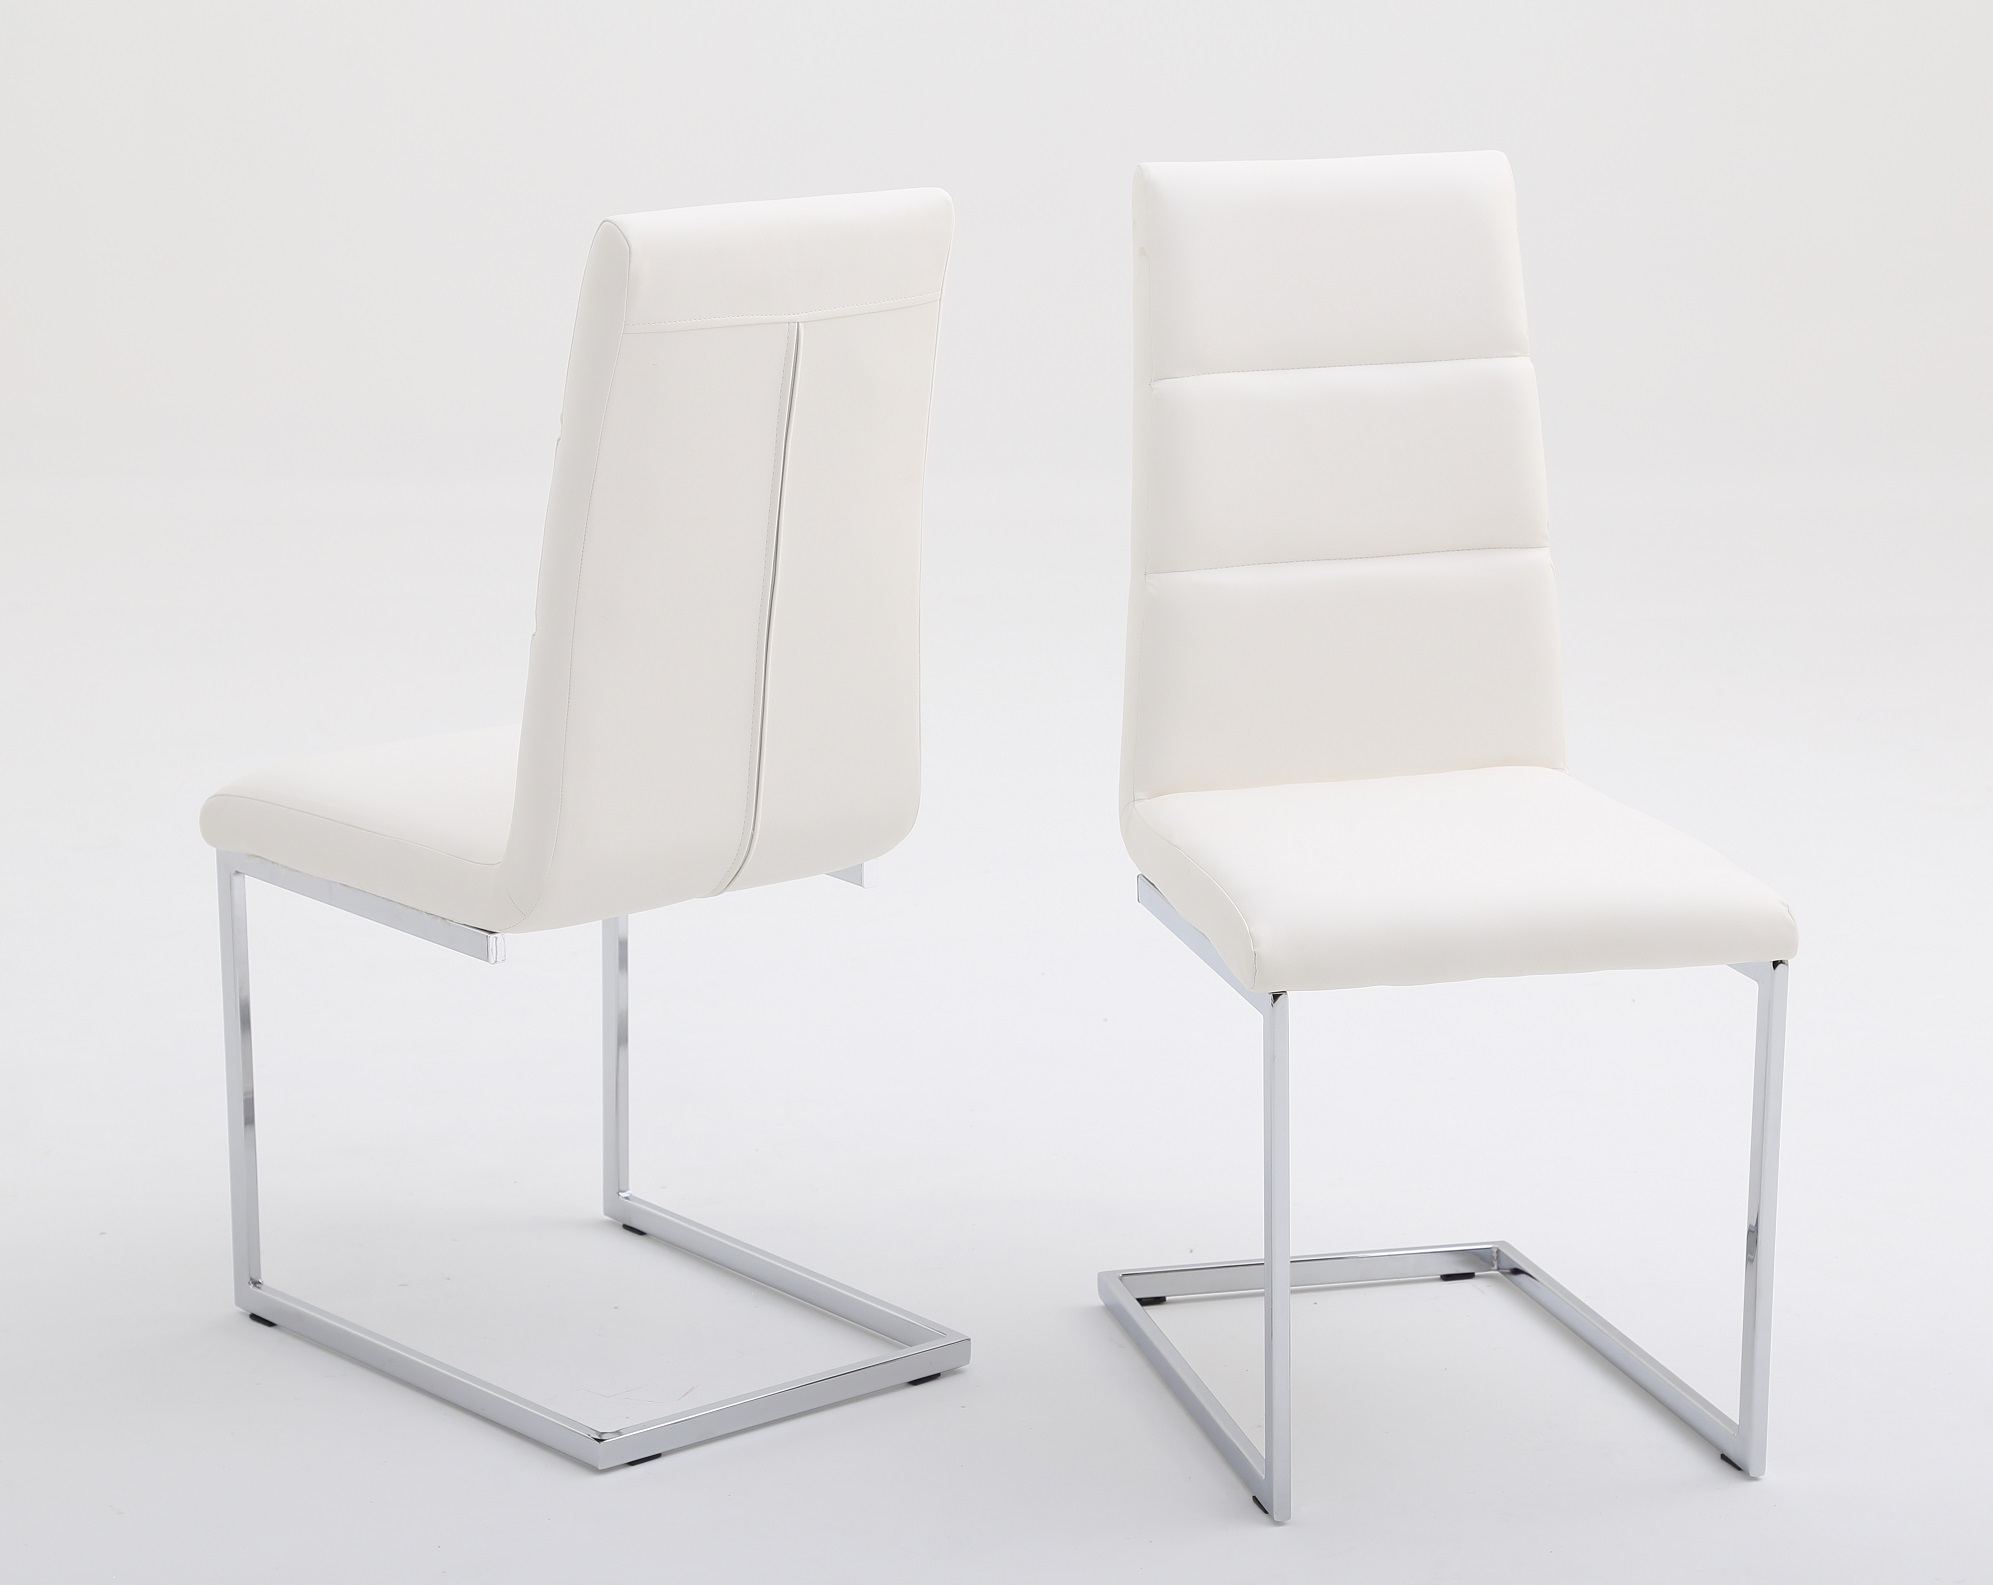 https://www.firstfurniture.co.uk/pub/media/catalog/product/z/a/zara_chair_white_1.jpg